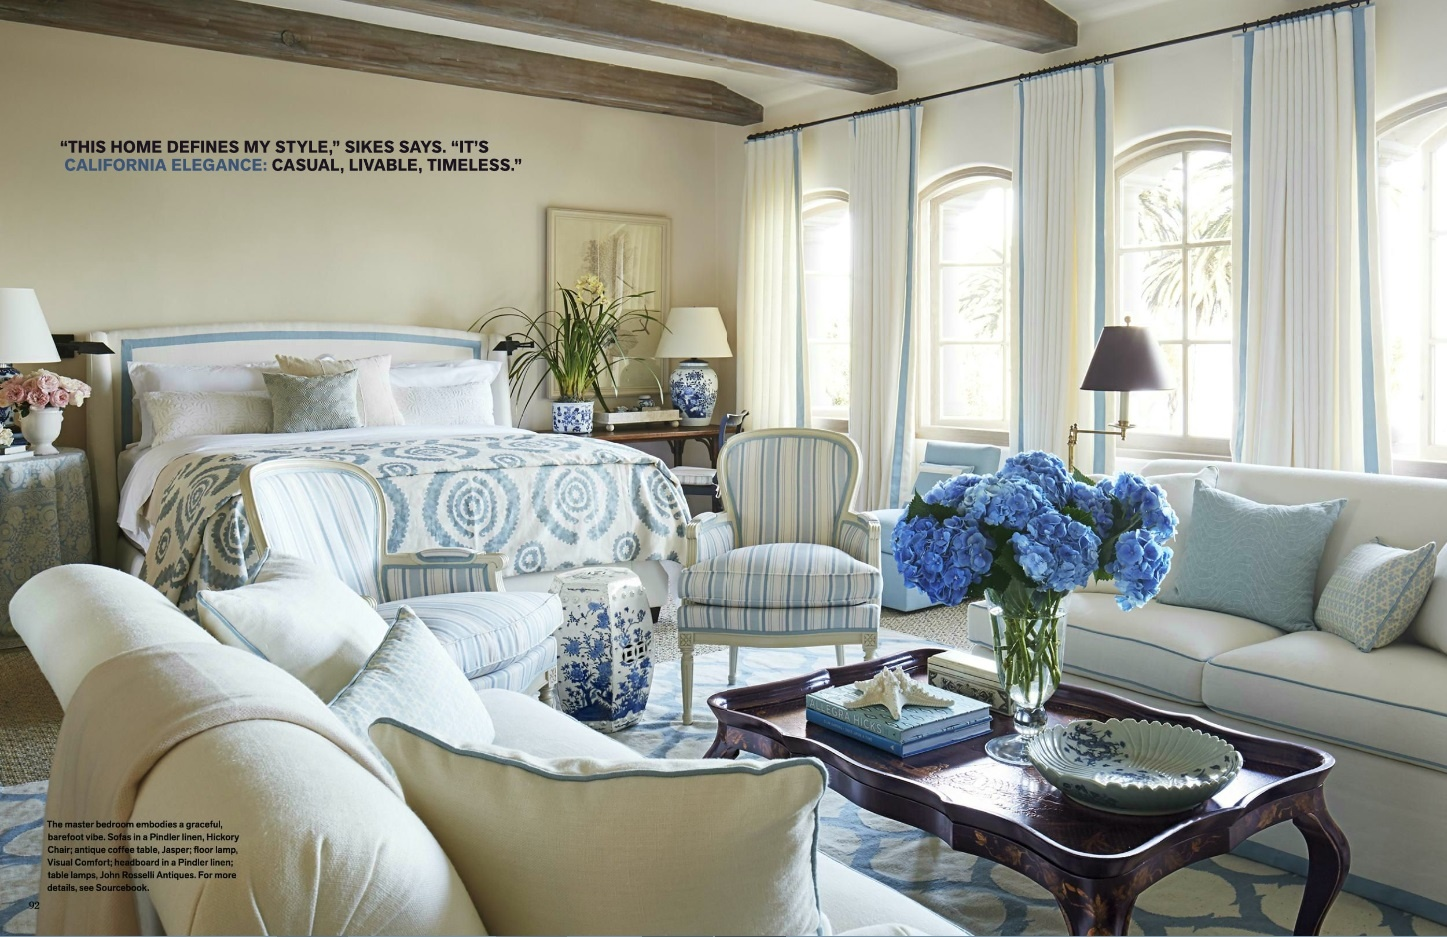 A blue and white geometric rug in an ogival pattern in a master bedroom designed by Mark D. Sikes - Veranda July/August 2016